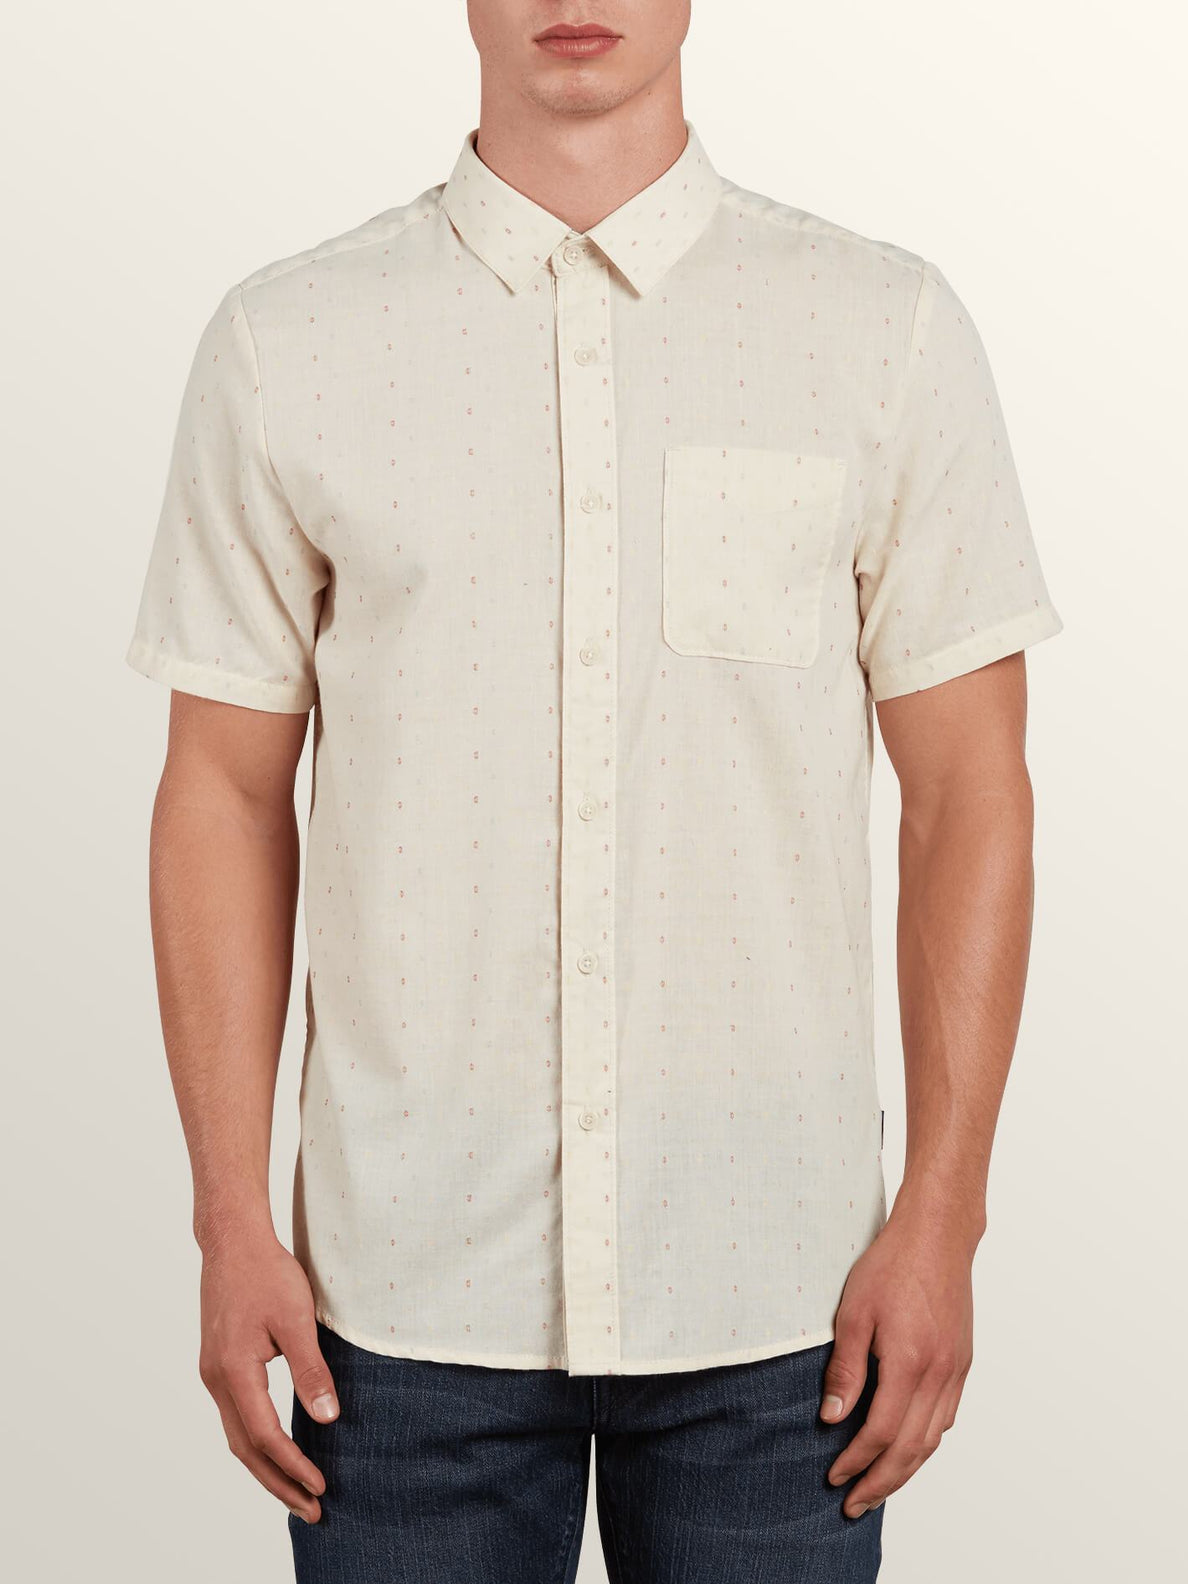 Dobler S/s In White Flash, Front View